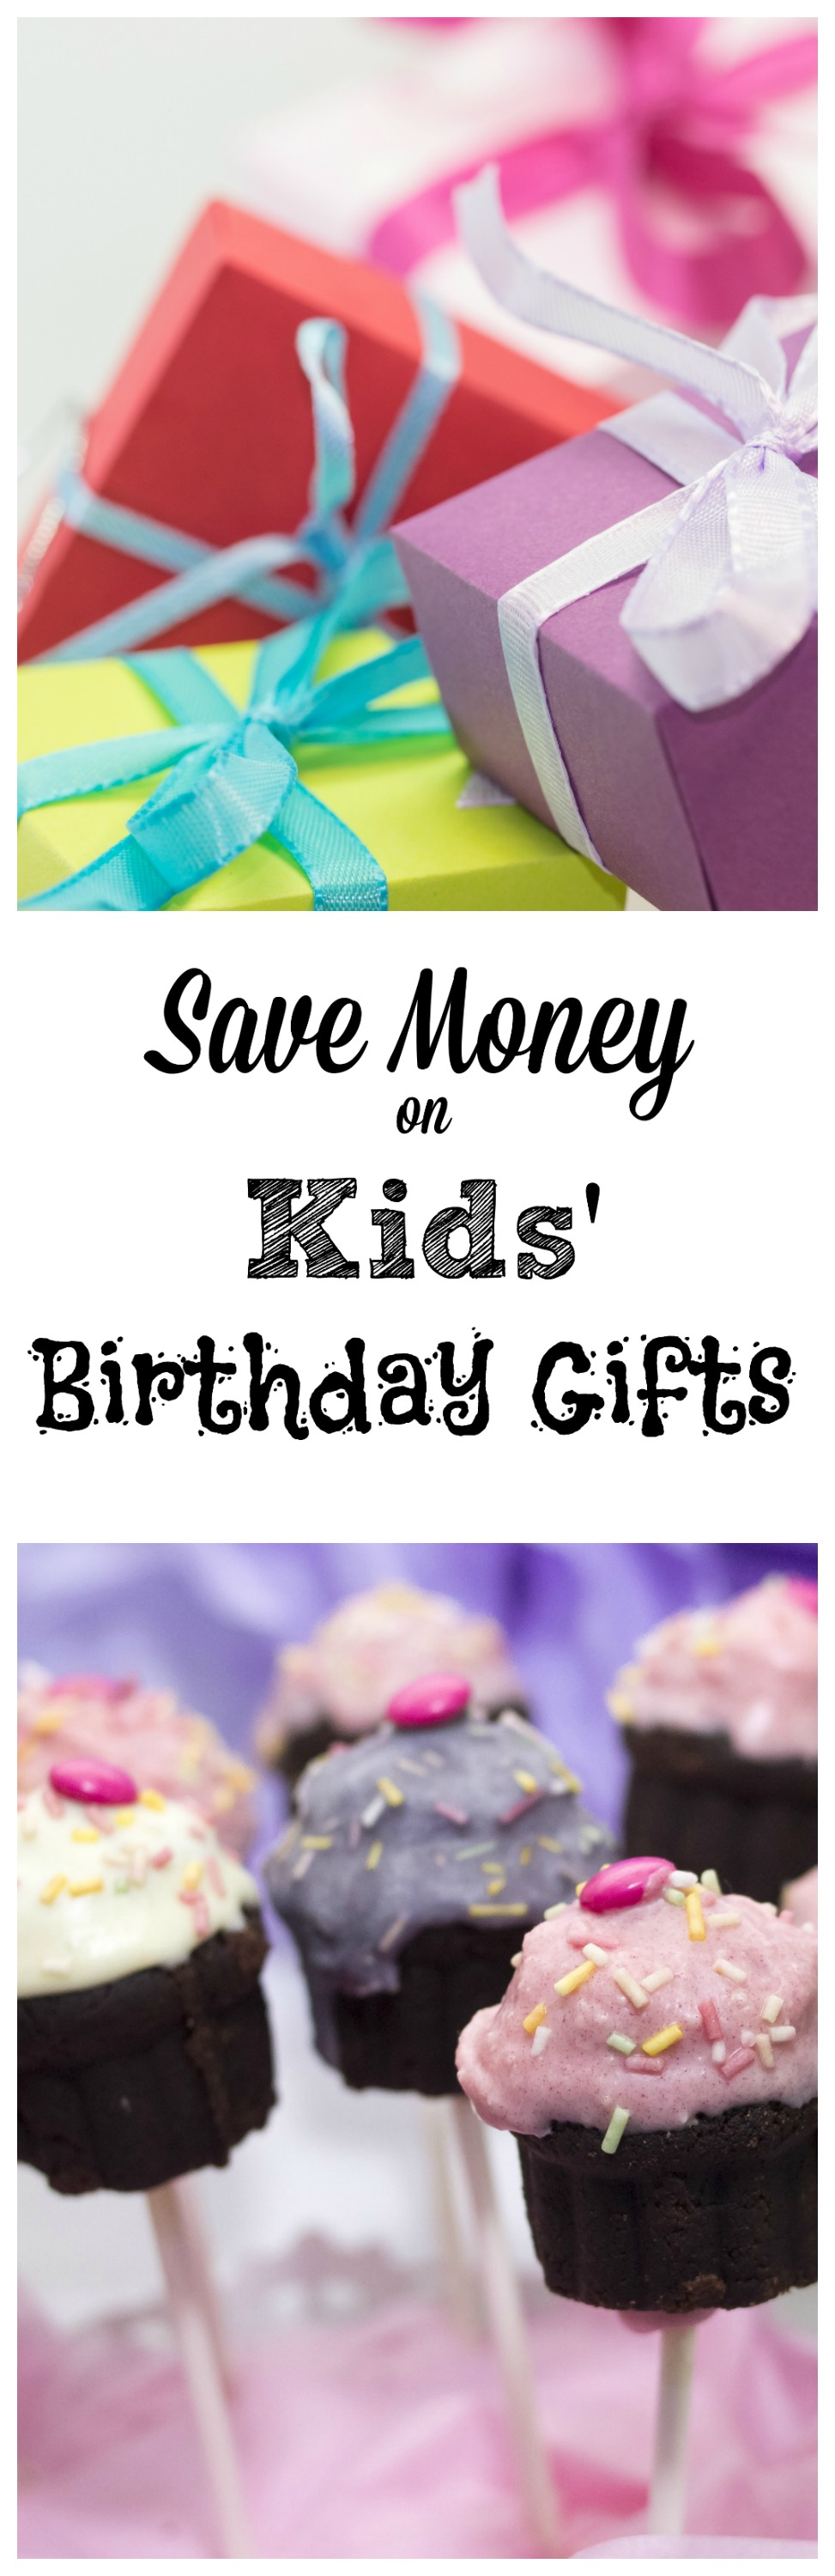 Save Money on Kids' Birthday Gifts